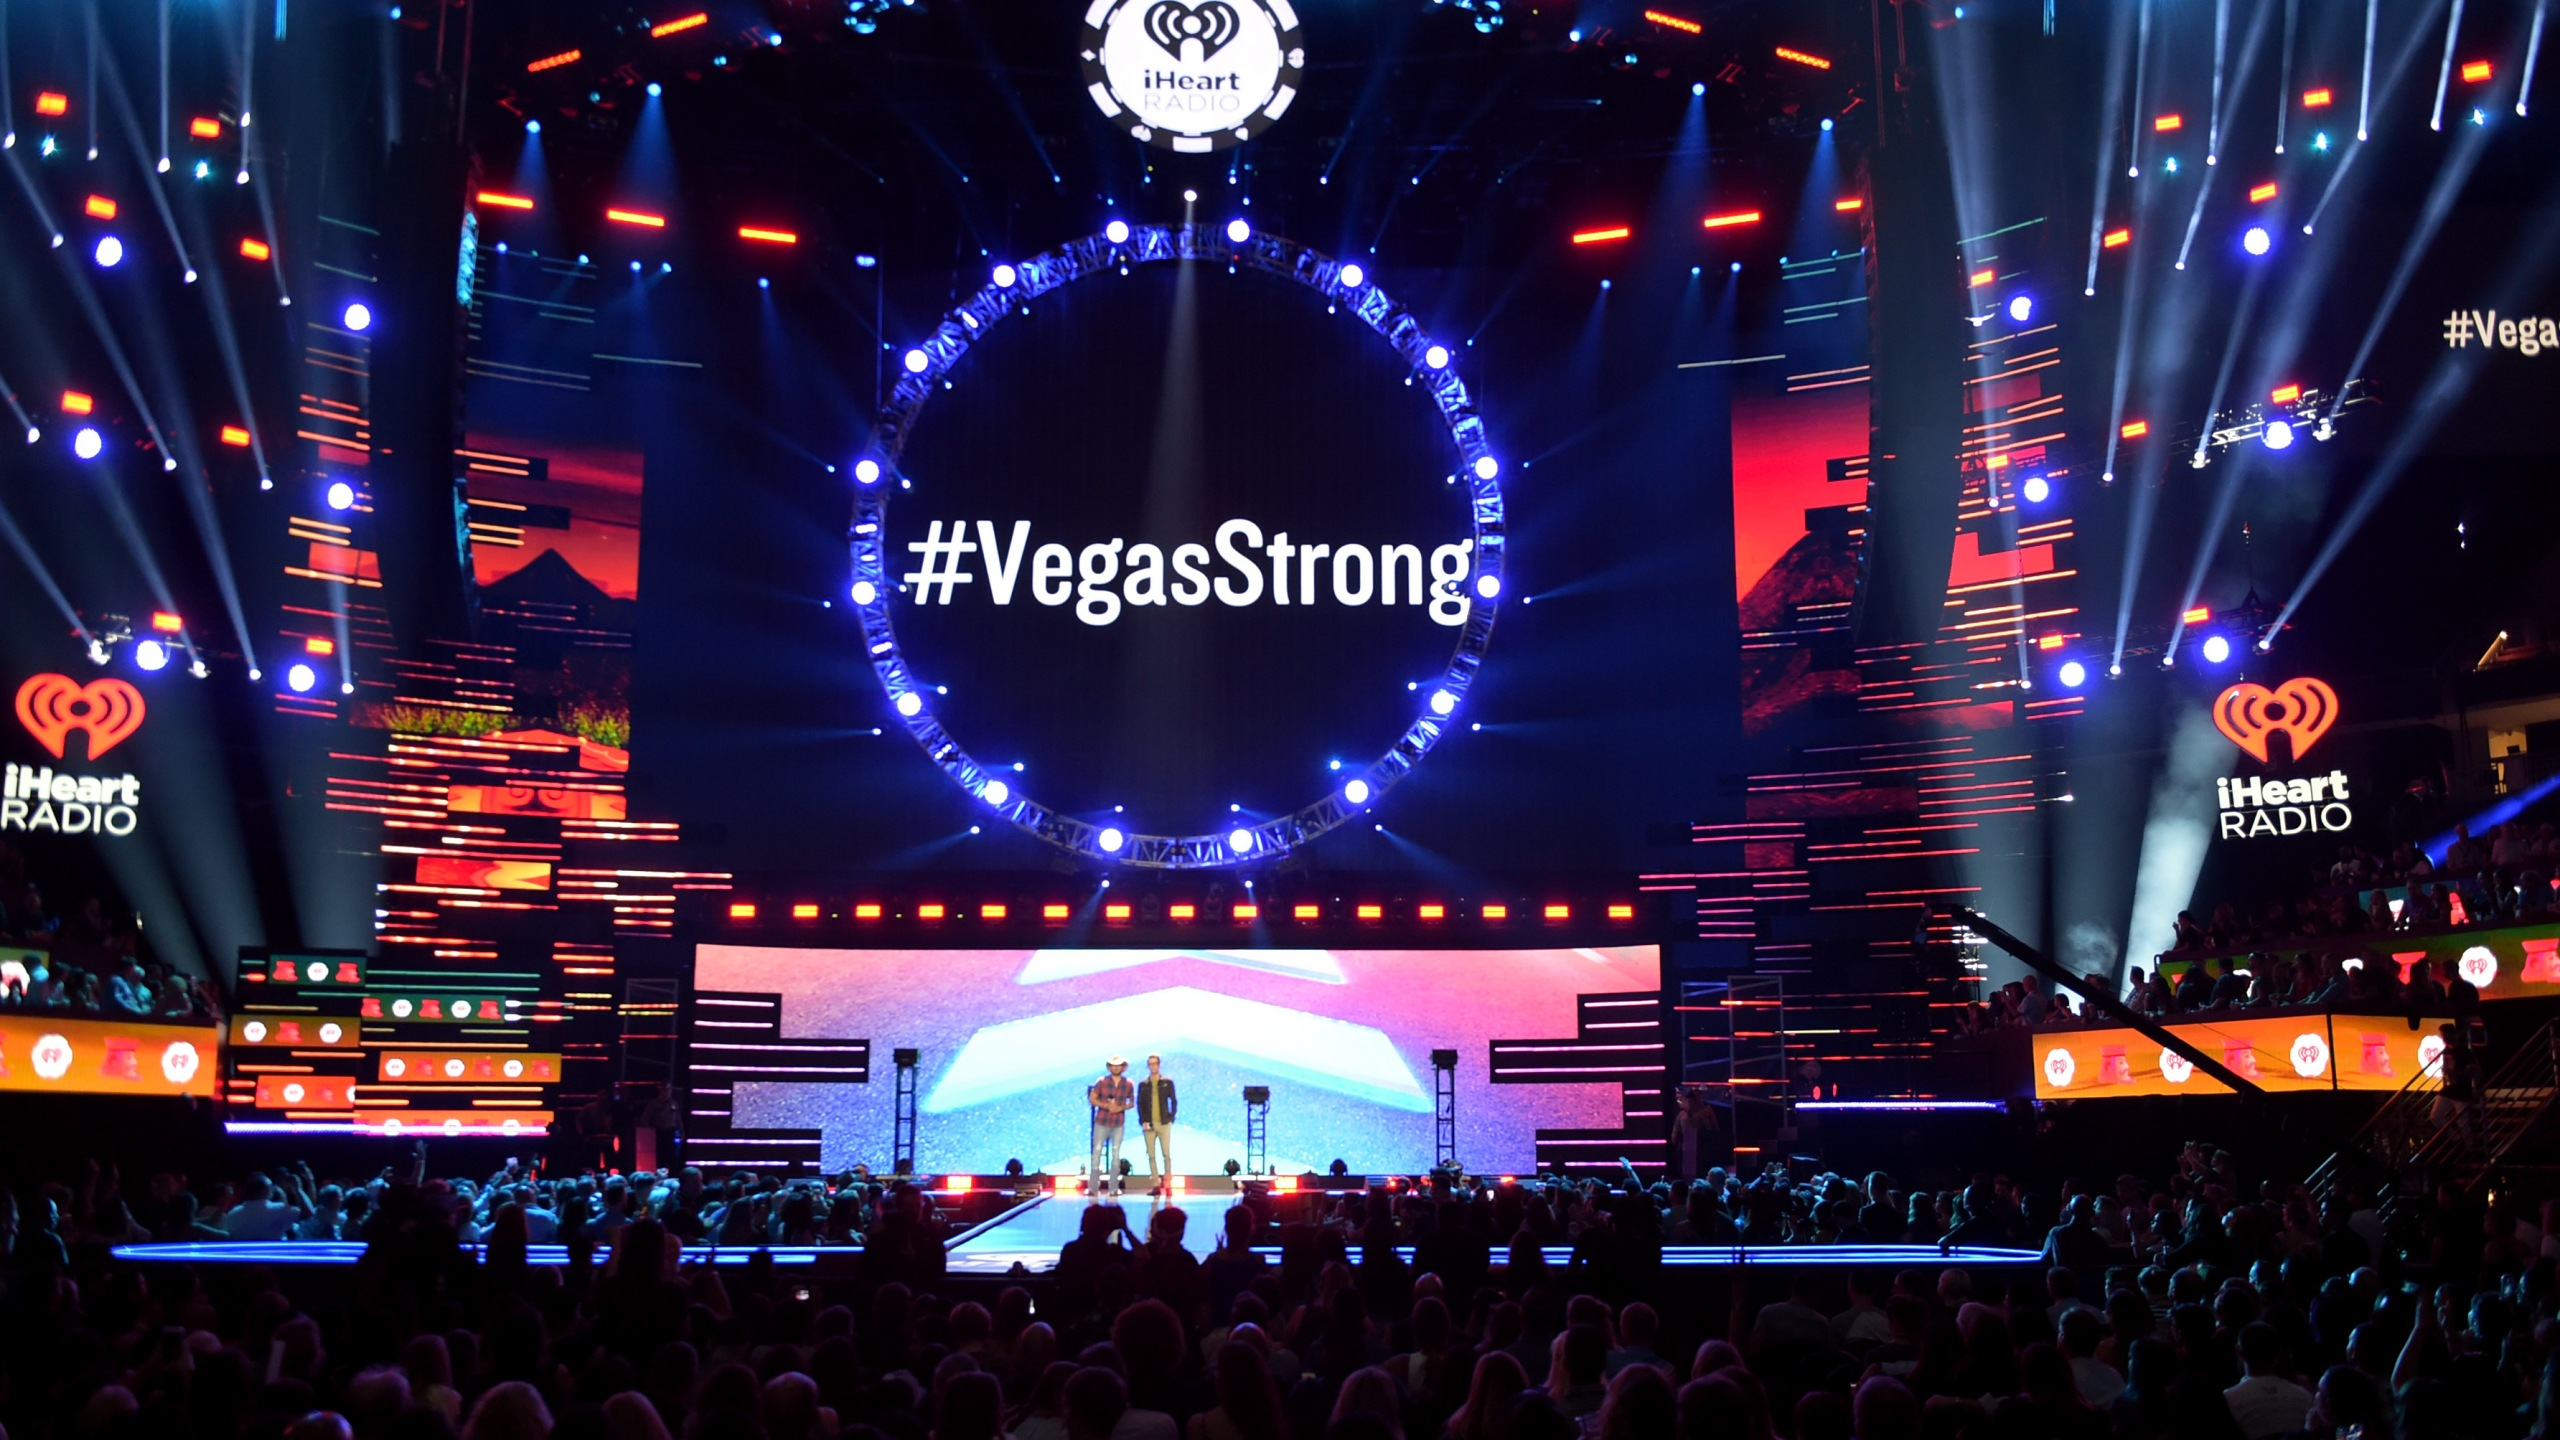 '#VegasStrong' is projected on a video screen while Jason Aldean (L) and Bobby Bones speak onstage during the 2018 iHeartRadio Music Festival at T-Mobile Arena on September 21, 2018 in Las Vegas, Nevada. (Credit: Kevin Winter/Getty Images for iHeartMedia)